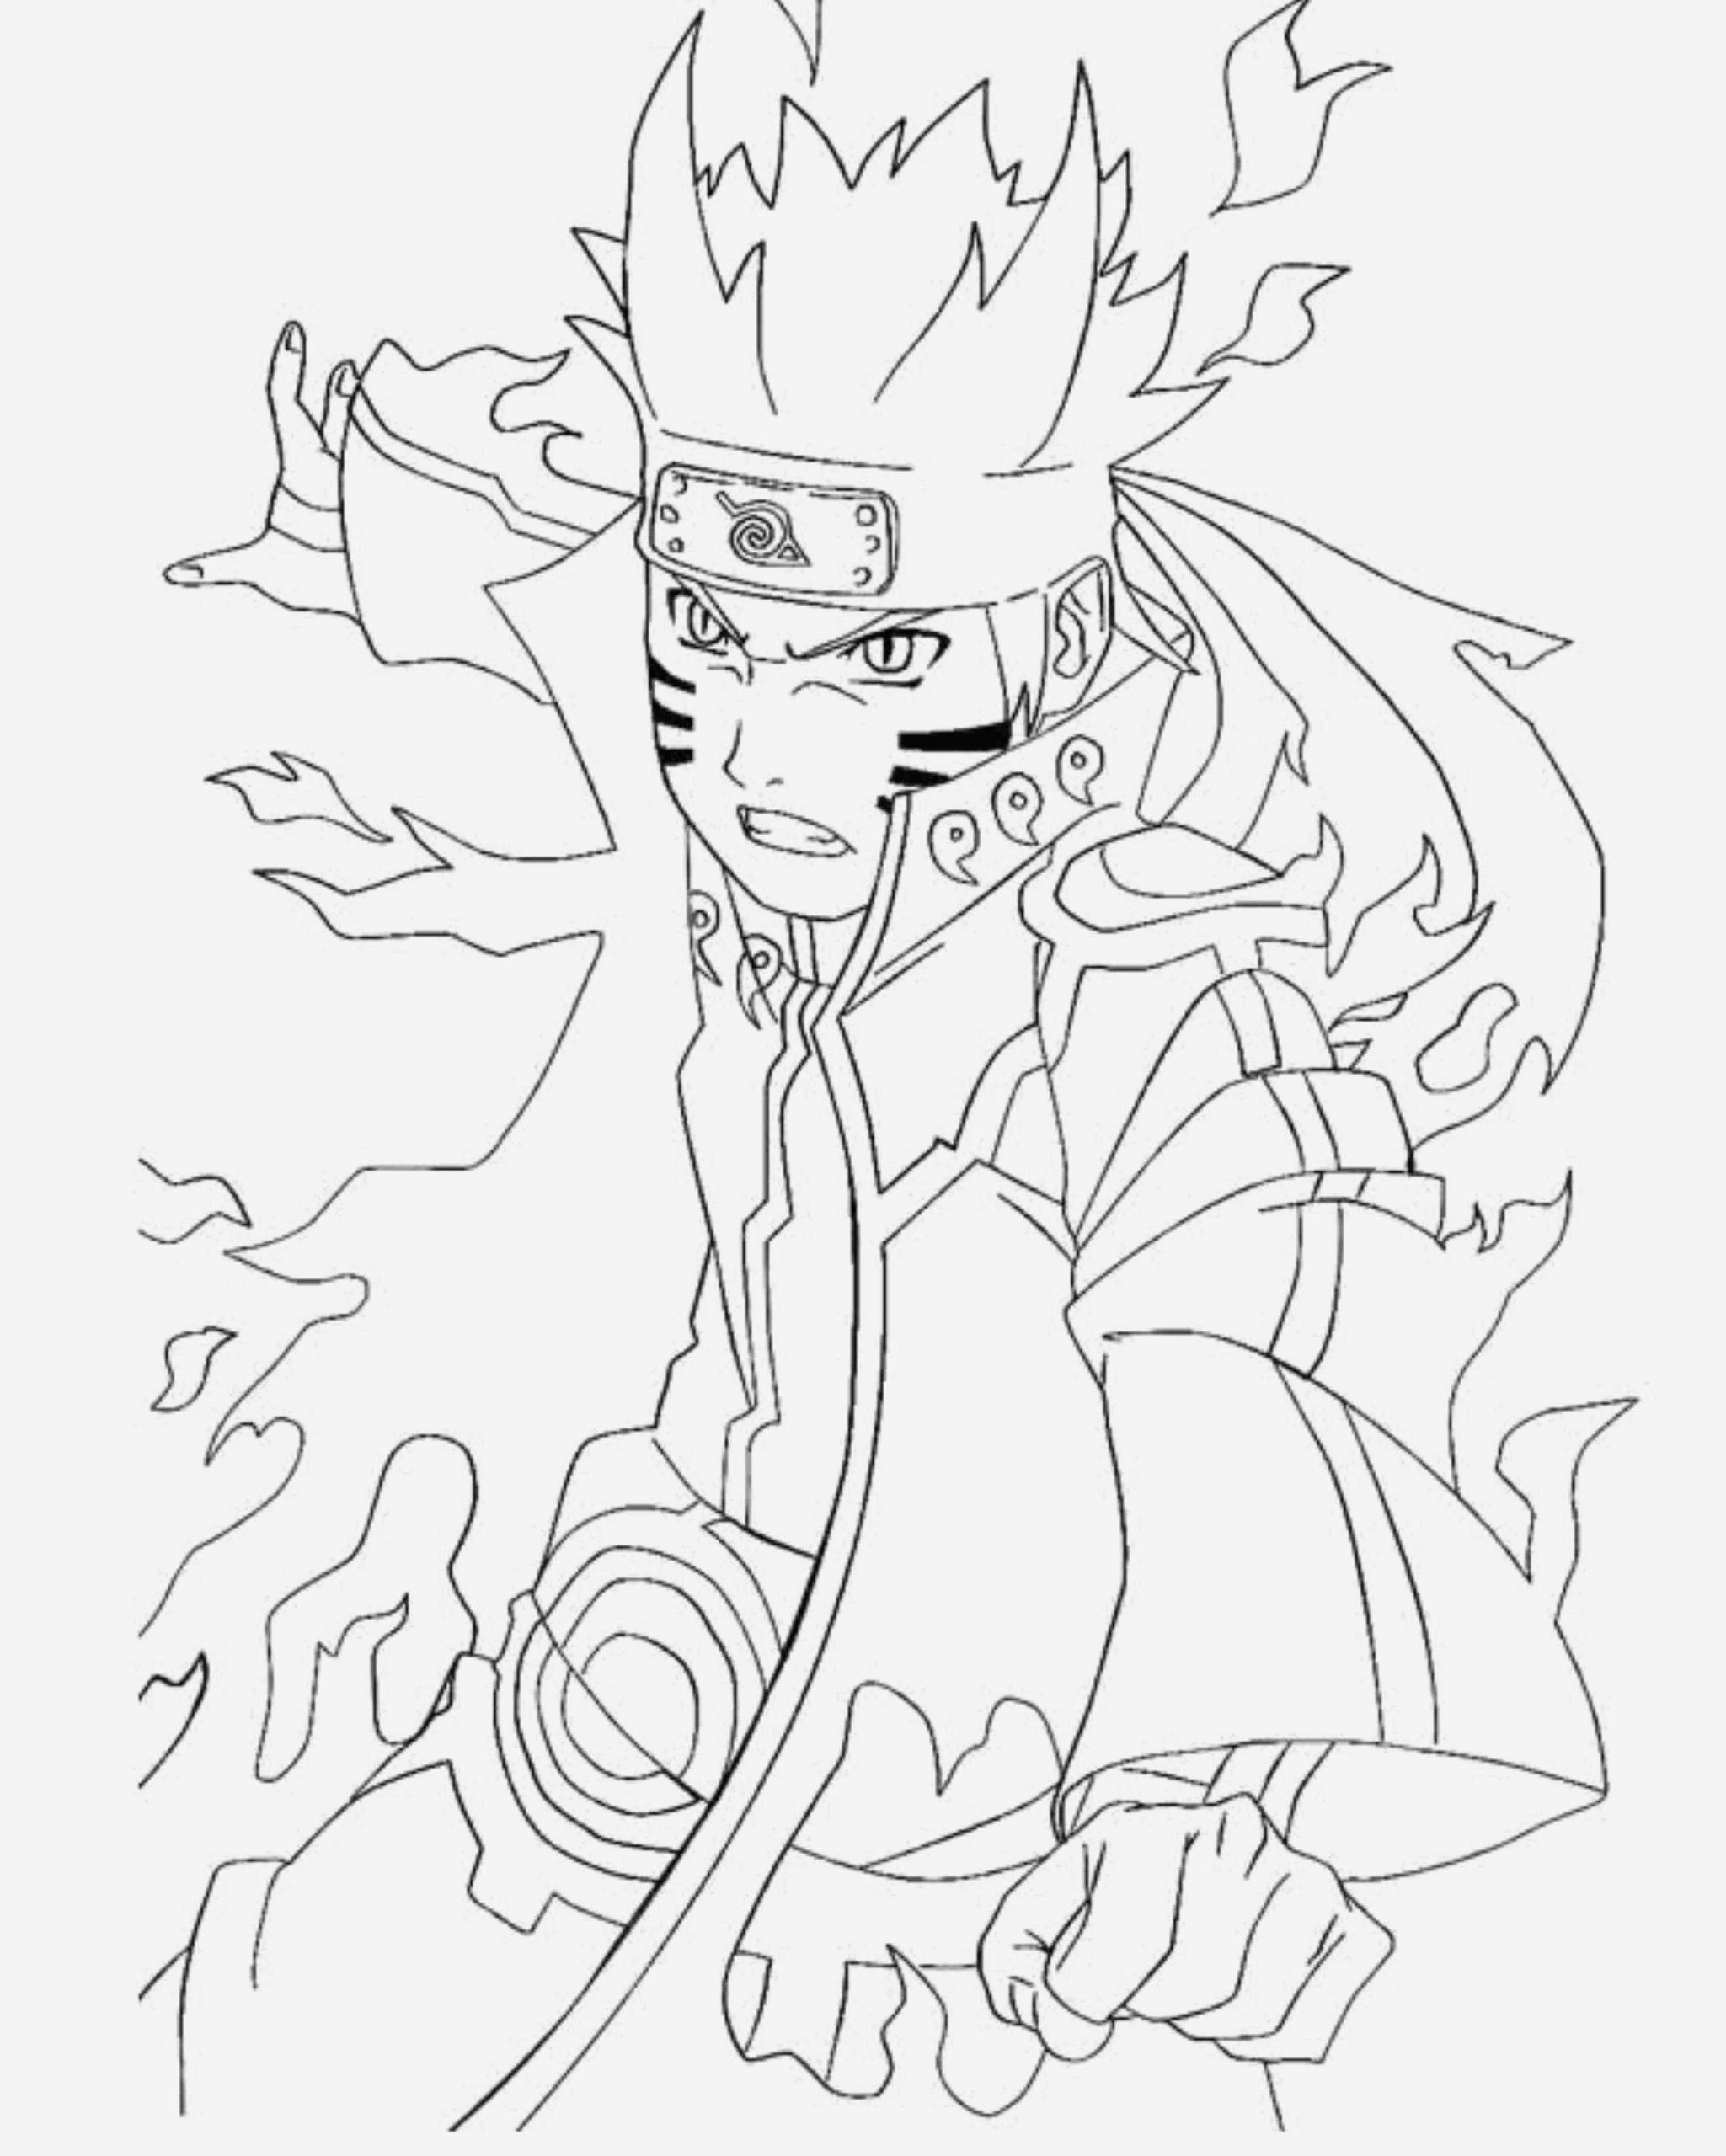 Coloriage Naruto Shippuden Lovely Coloring Pages Of Naruto Shippuden Characters Of Coloriage Naruto Shippuden